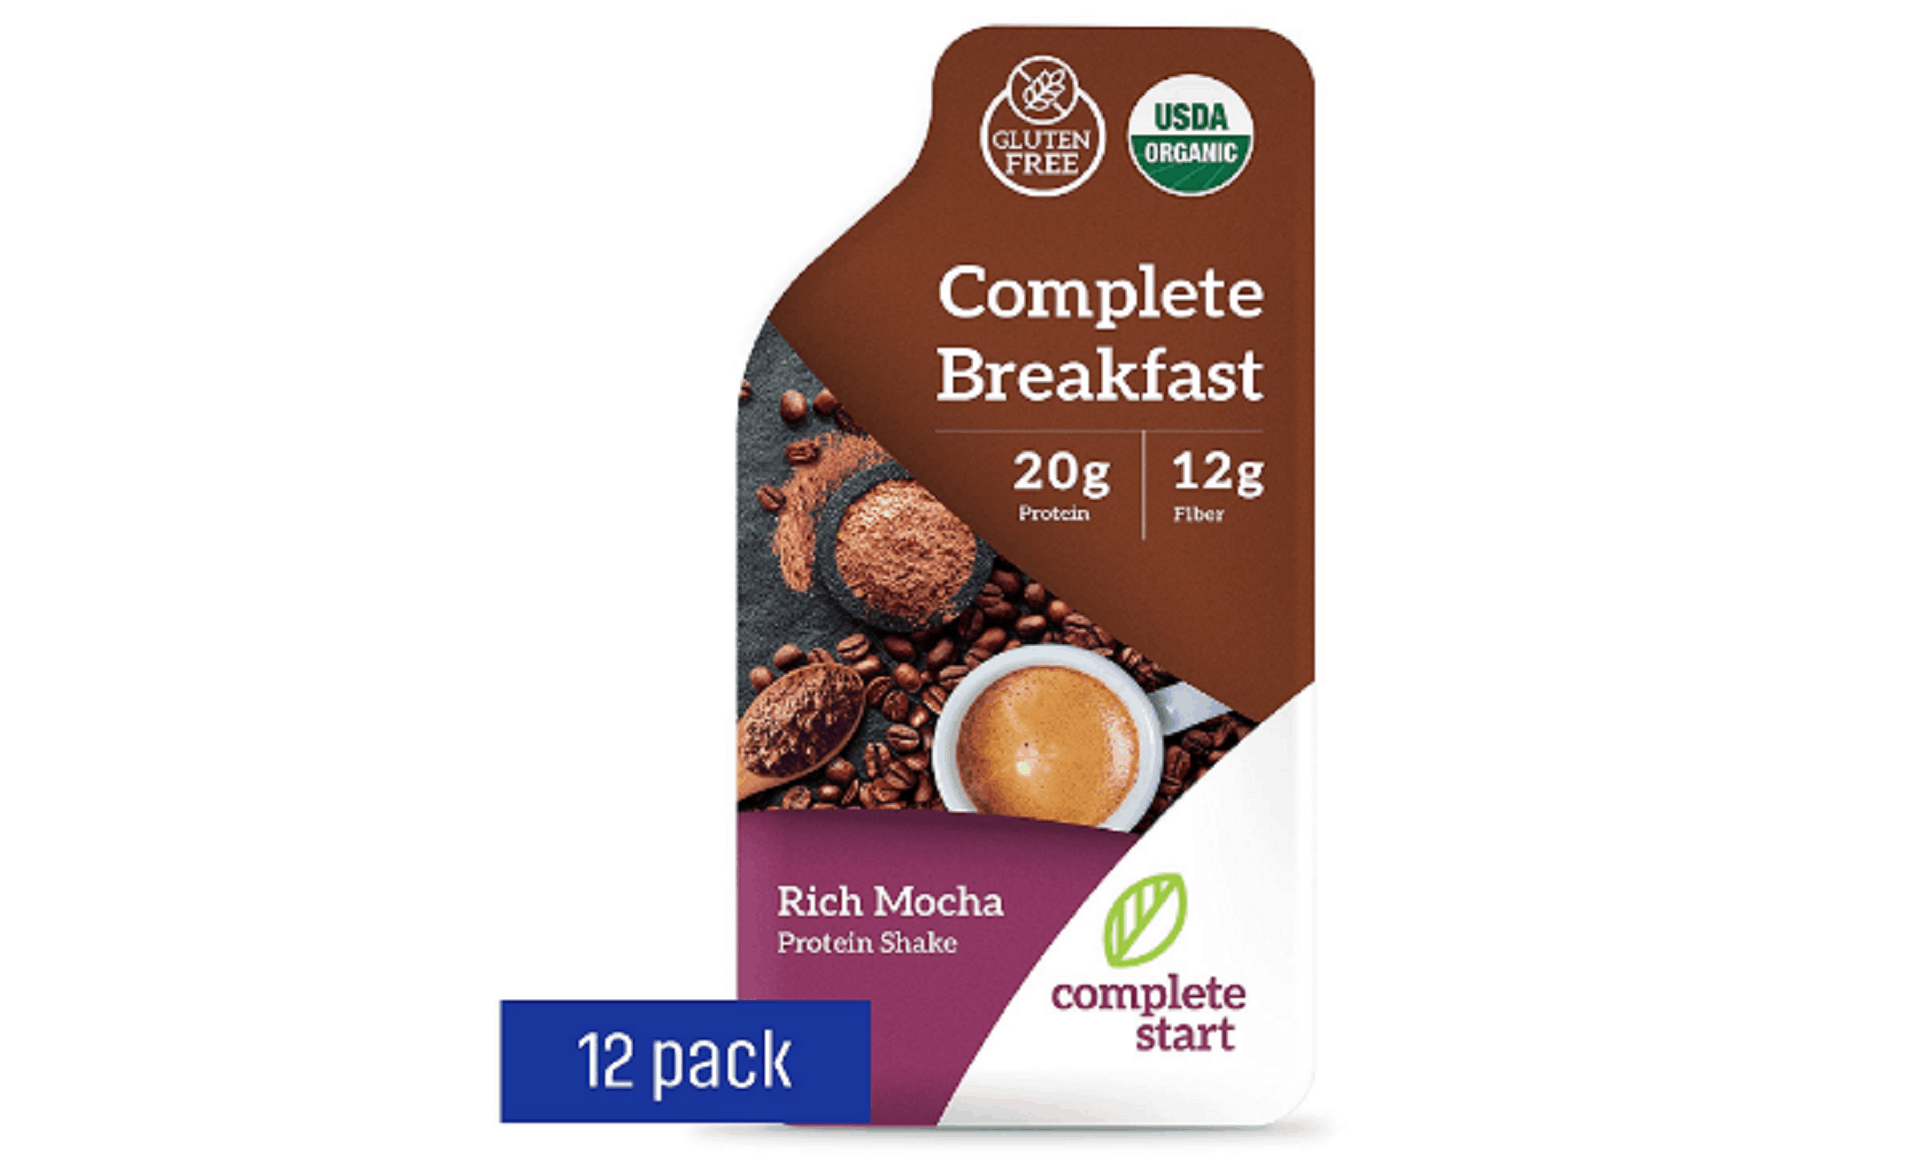 complete start meal replacement shake